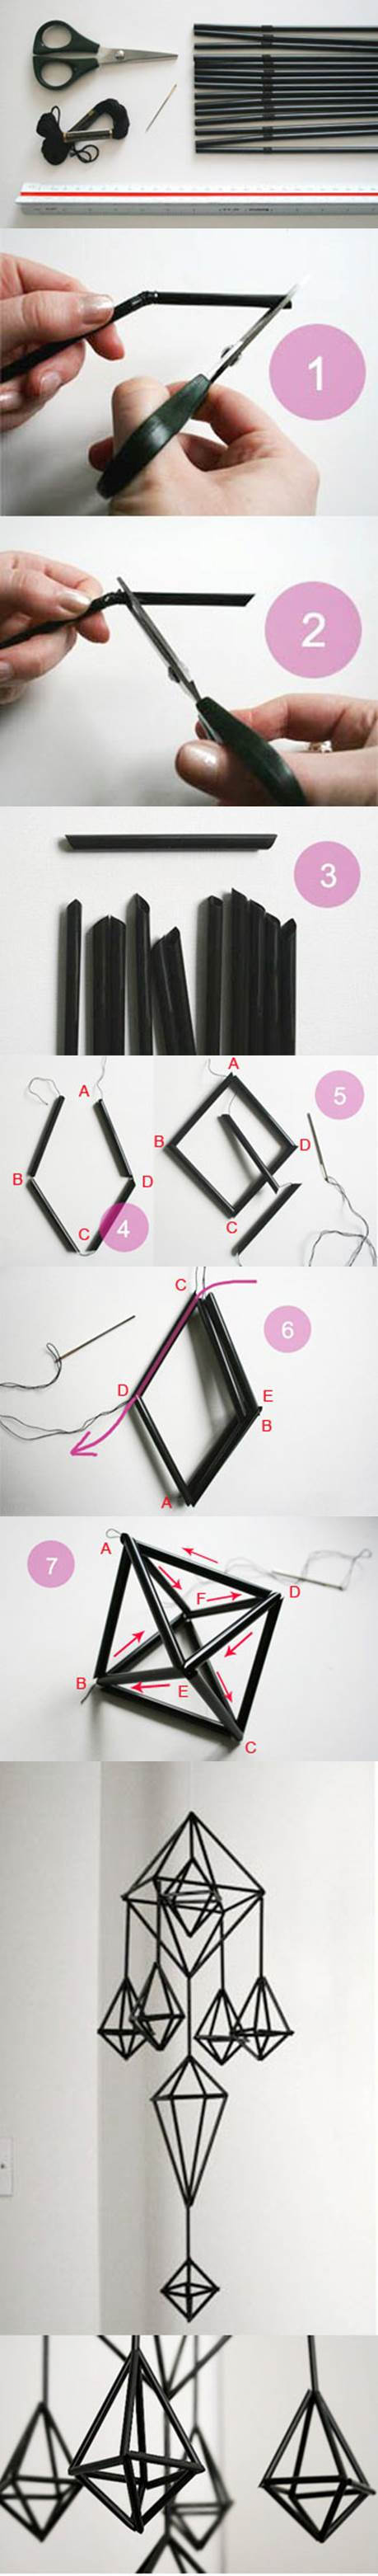 DIY Unique Hanging Decorations from Straws 2